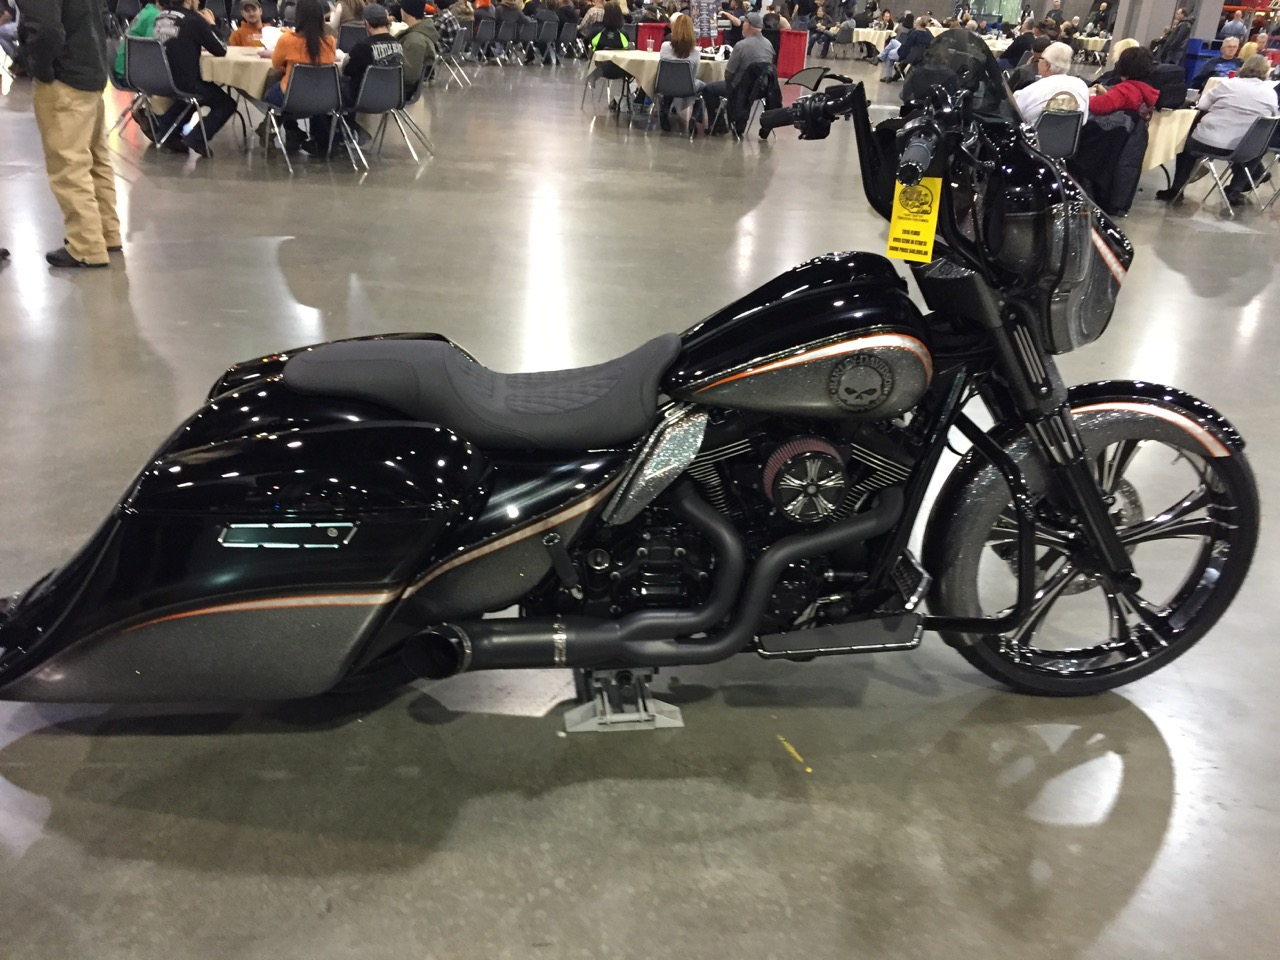 Rich's favorite of the Easyriders show